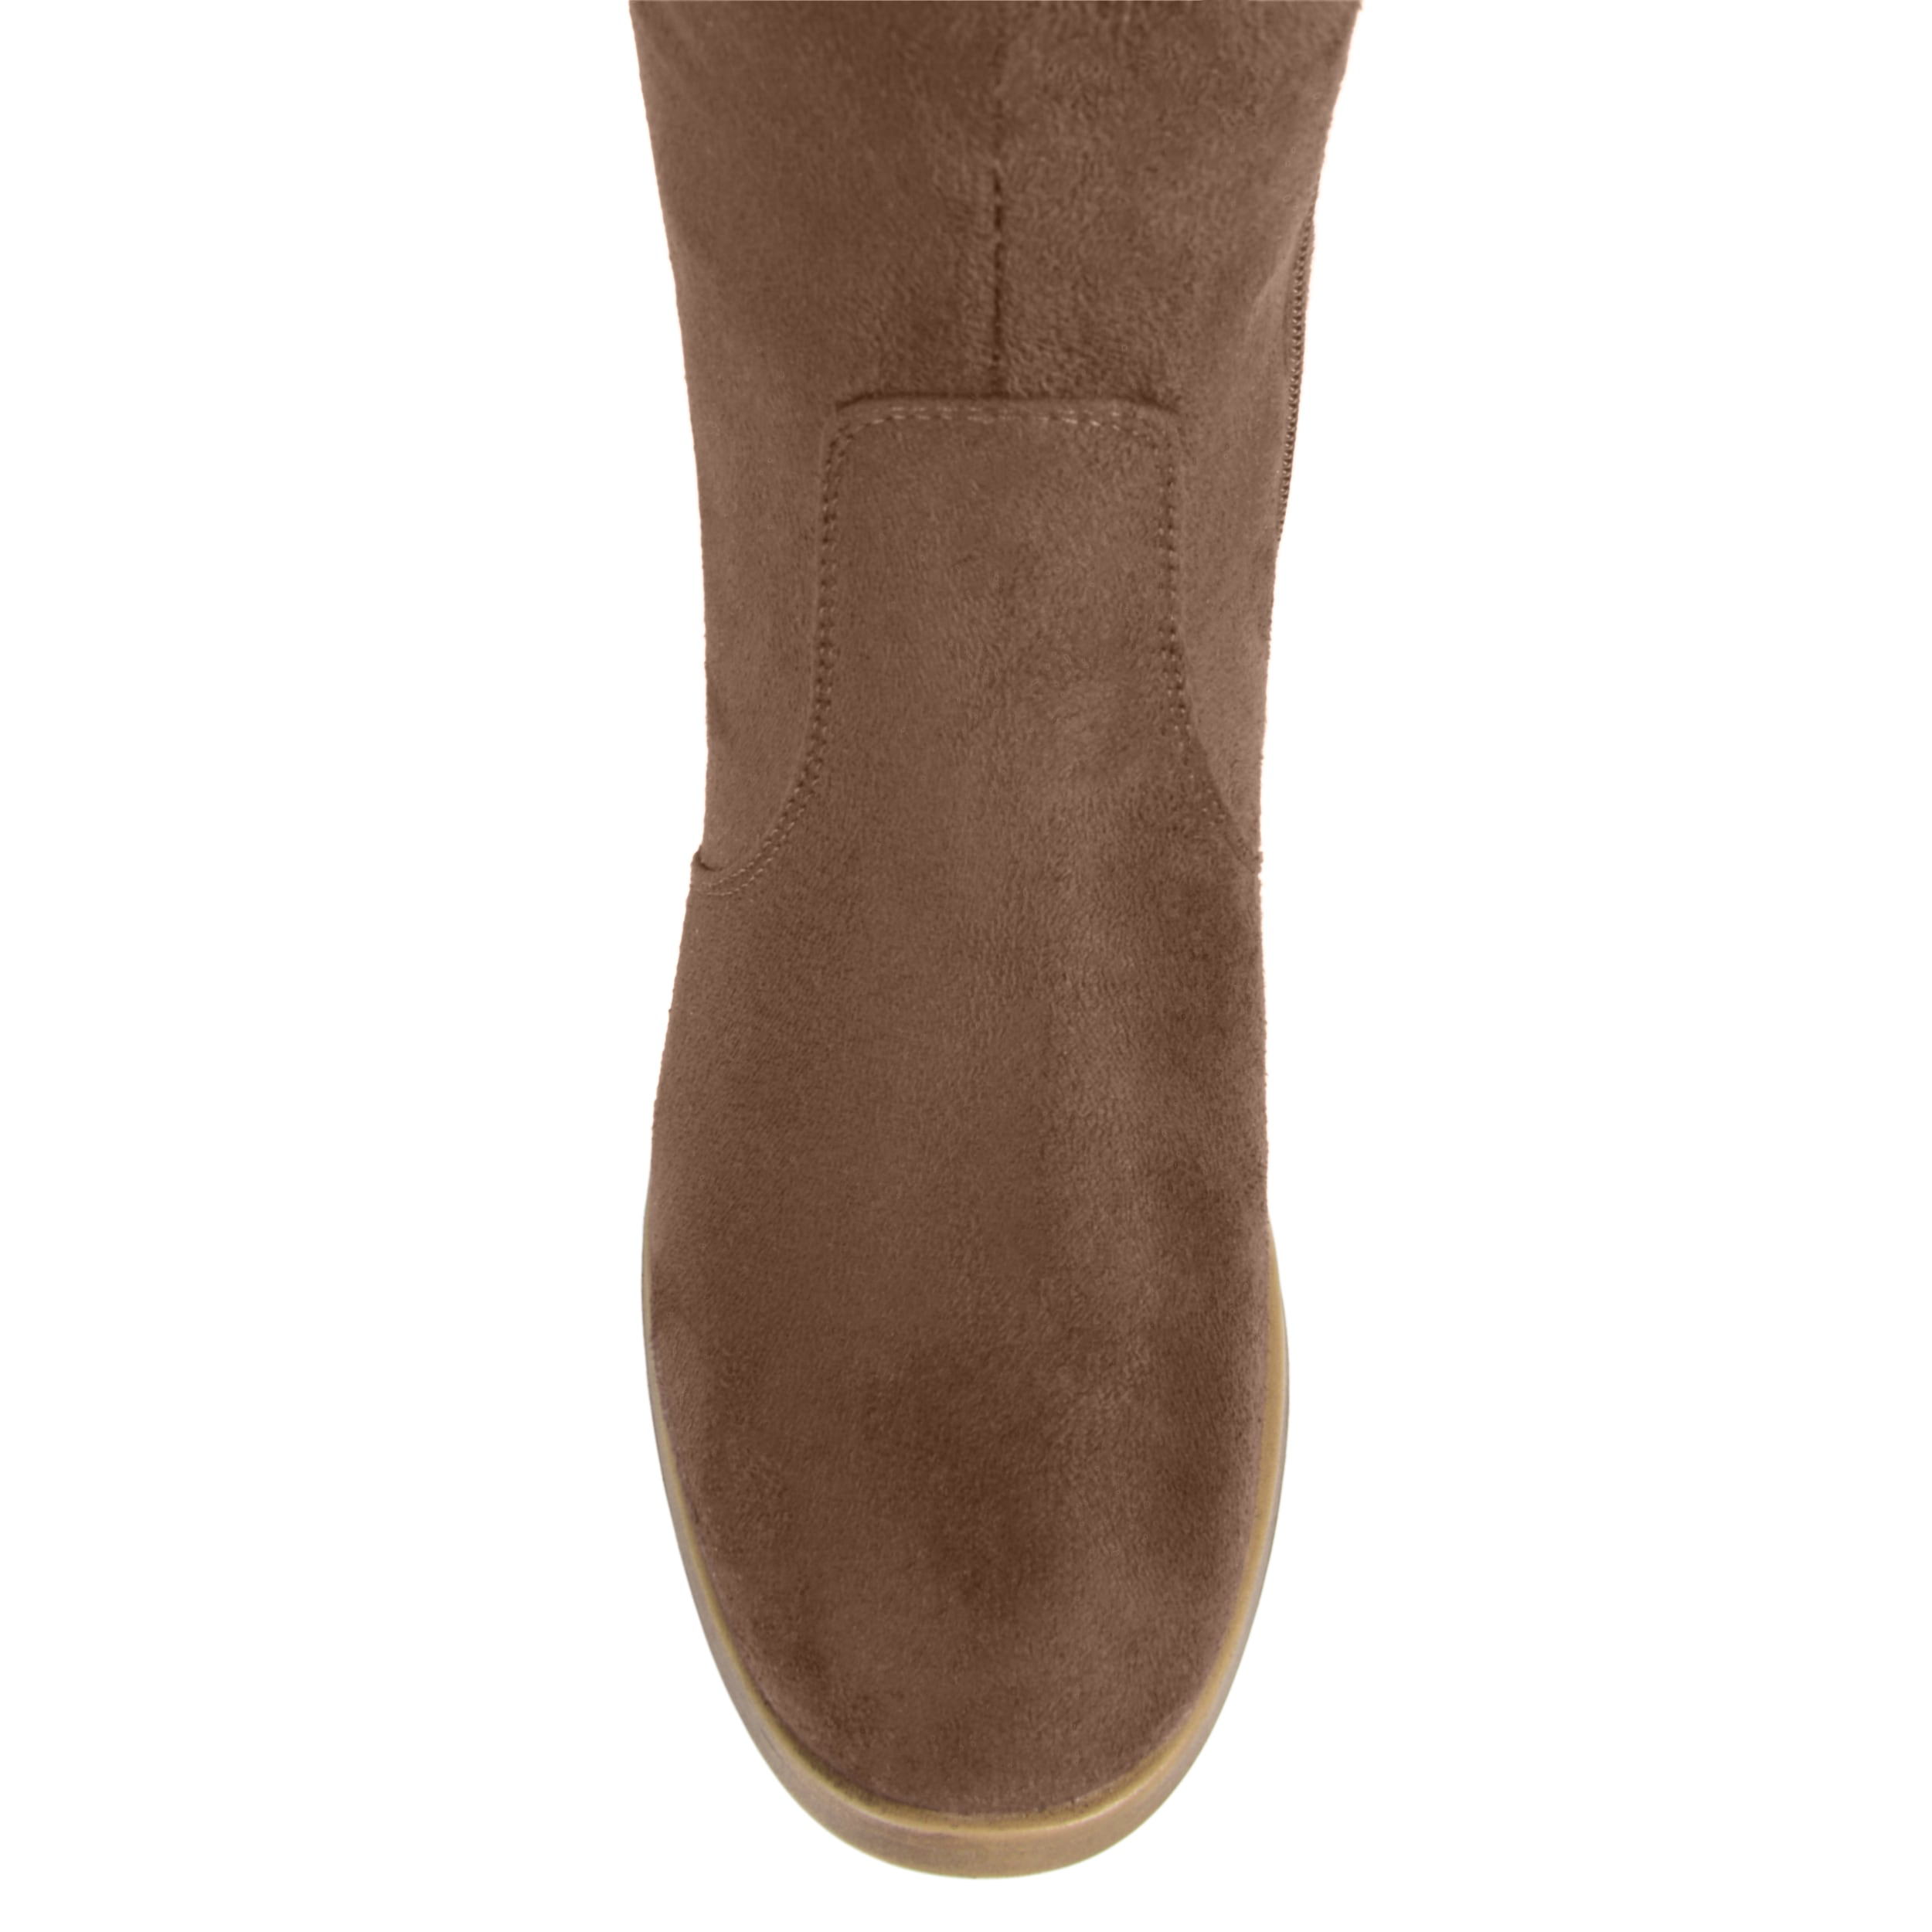 26a570decdeaf Shop Journee Collection Women s  Pitch  Regular and Wide Calf Boots - Free  Shipping Today - Overstock - 16518853